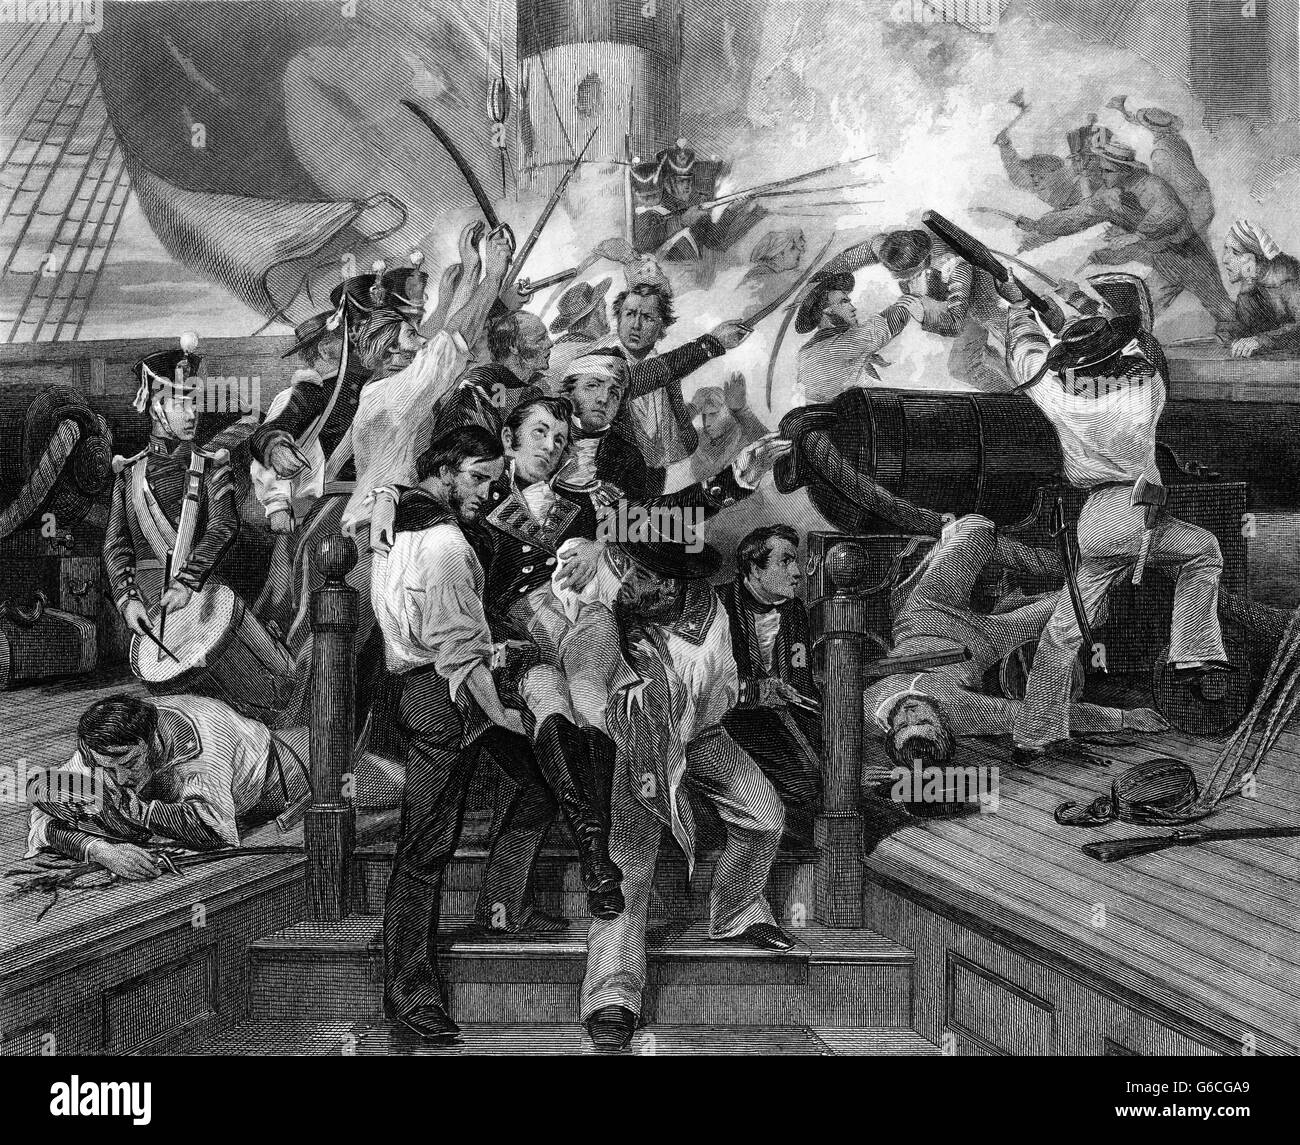 1810s AUGUST 1813 DEATH OF CAPTAIN LAWRENCE NAVAL BATTLE WAR OF 1812 LAST WORDS DON'T GIVE UP THE SHIP - Stock Image